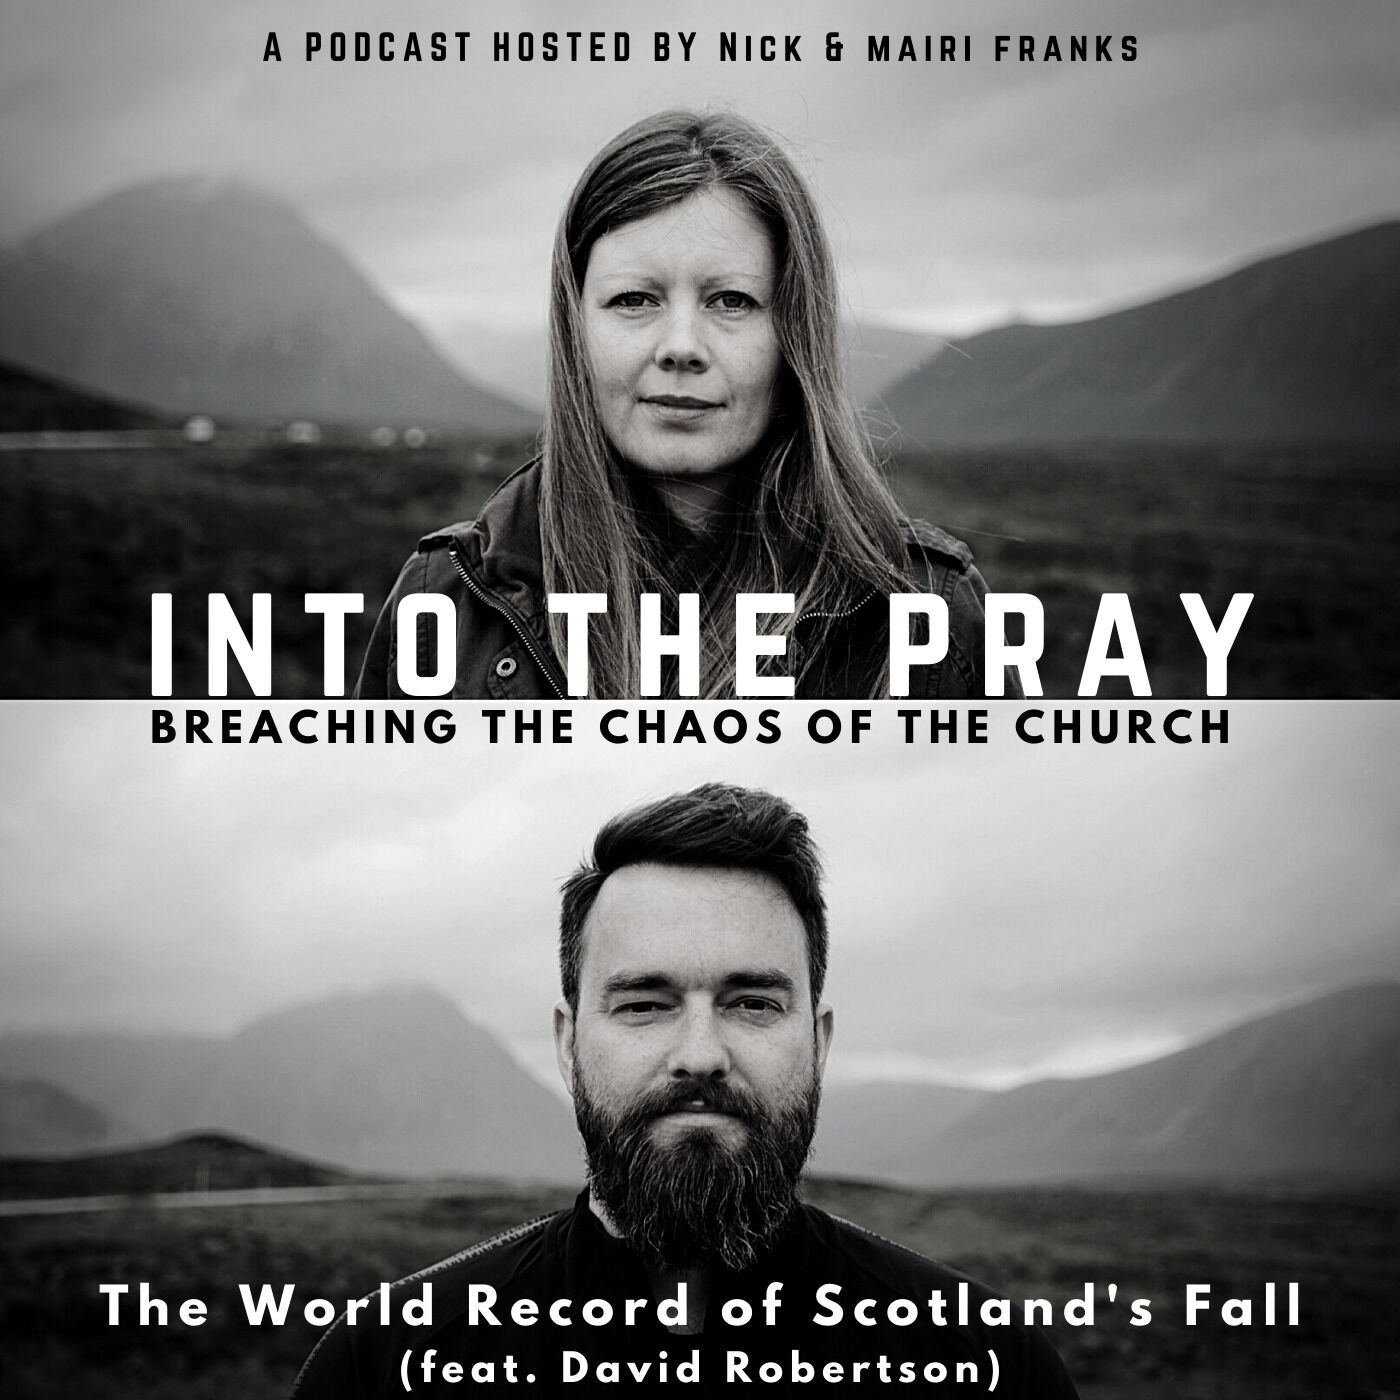 Scotland's Fall (feat. David Robertson)